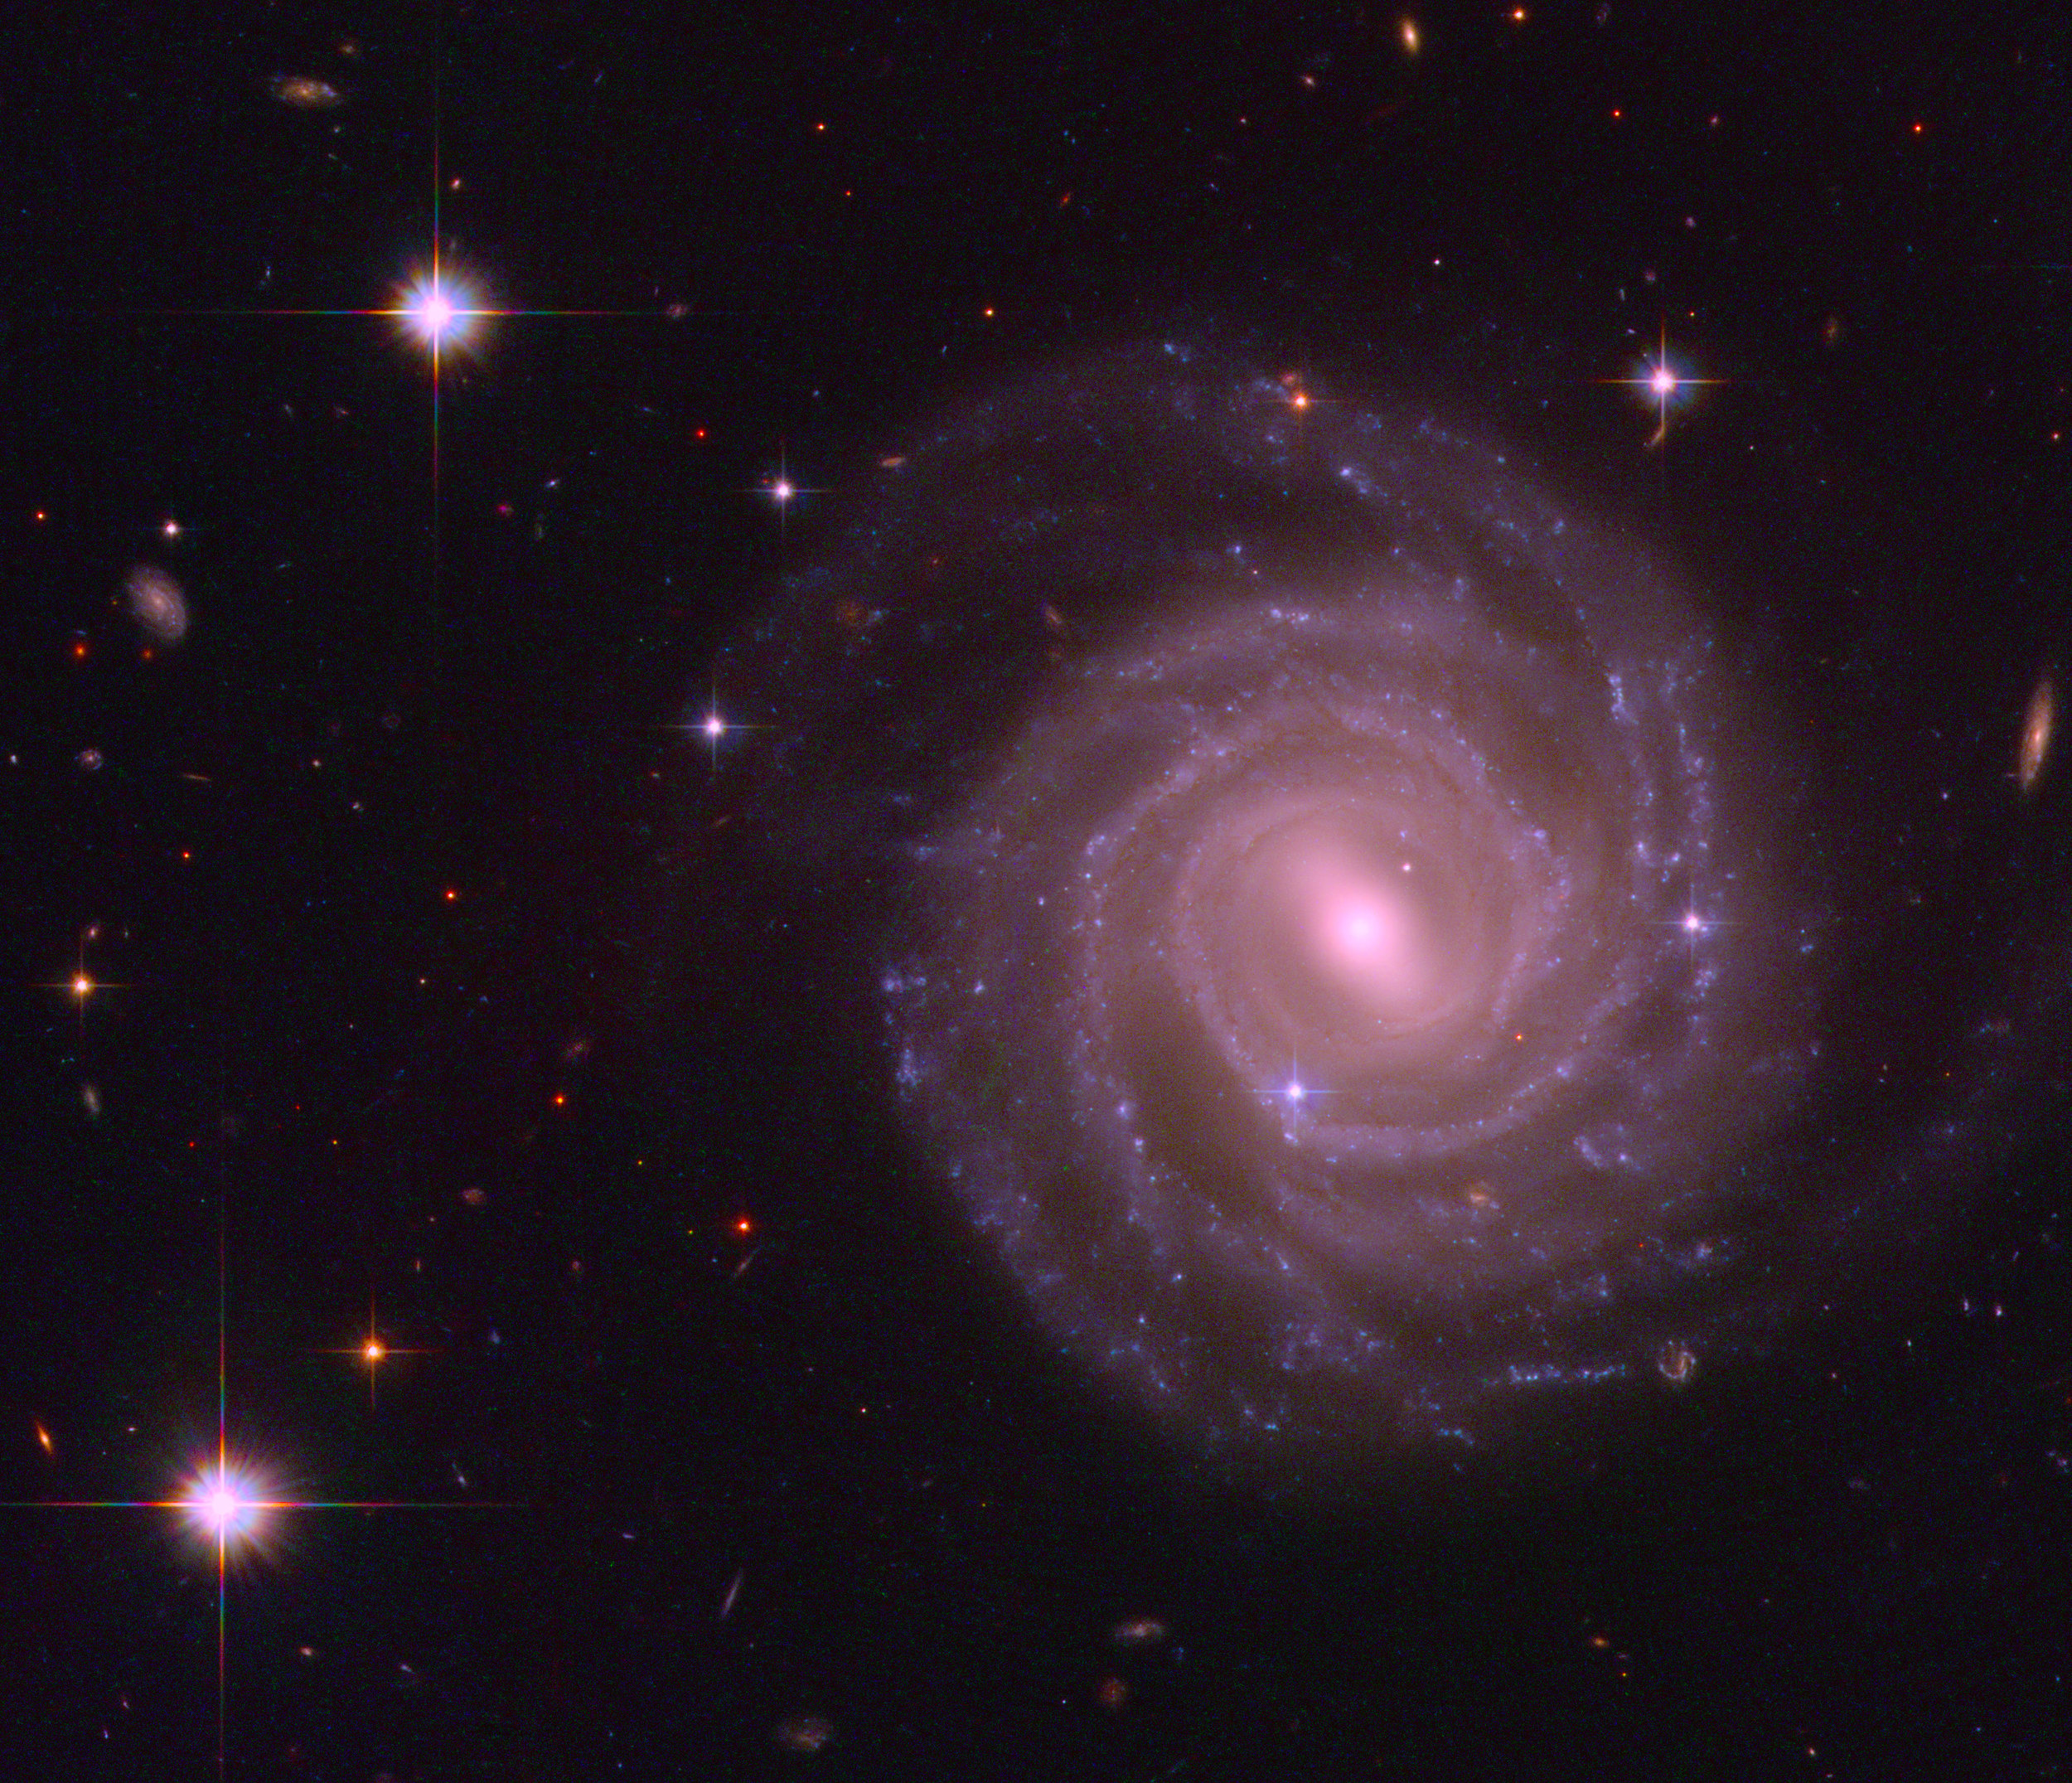 """""""An HST image of galaxy UGC 12158, which is thought to resemble the Milky Way in appearance"""" (cropped and coloured by RYC), from ESA/Hubble & NASA, http://www.spacetelescope.org/images/potw1035a/ (Wikimedia Commons)"""